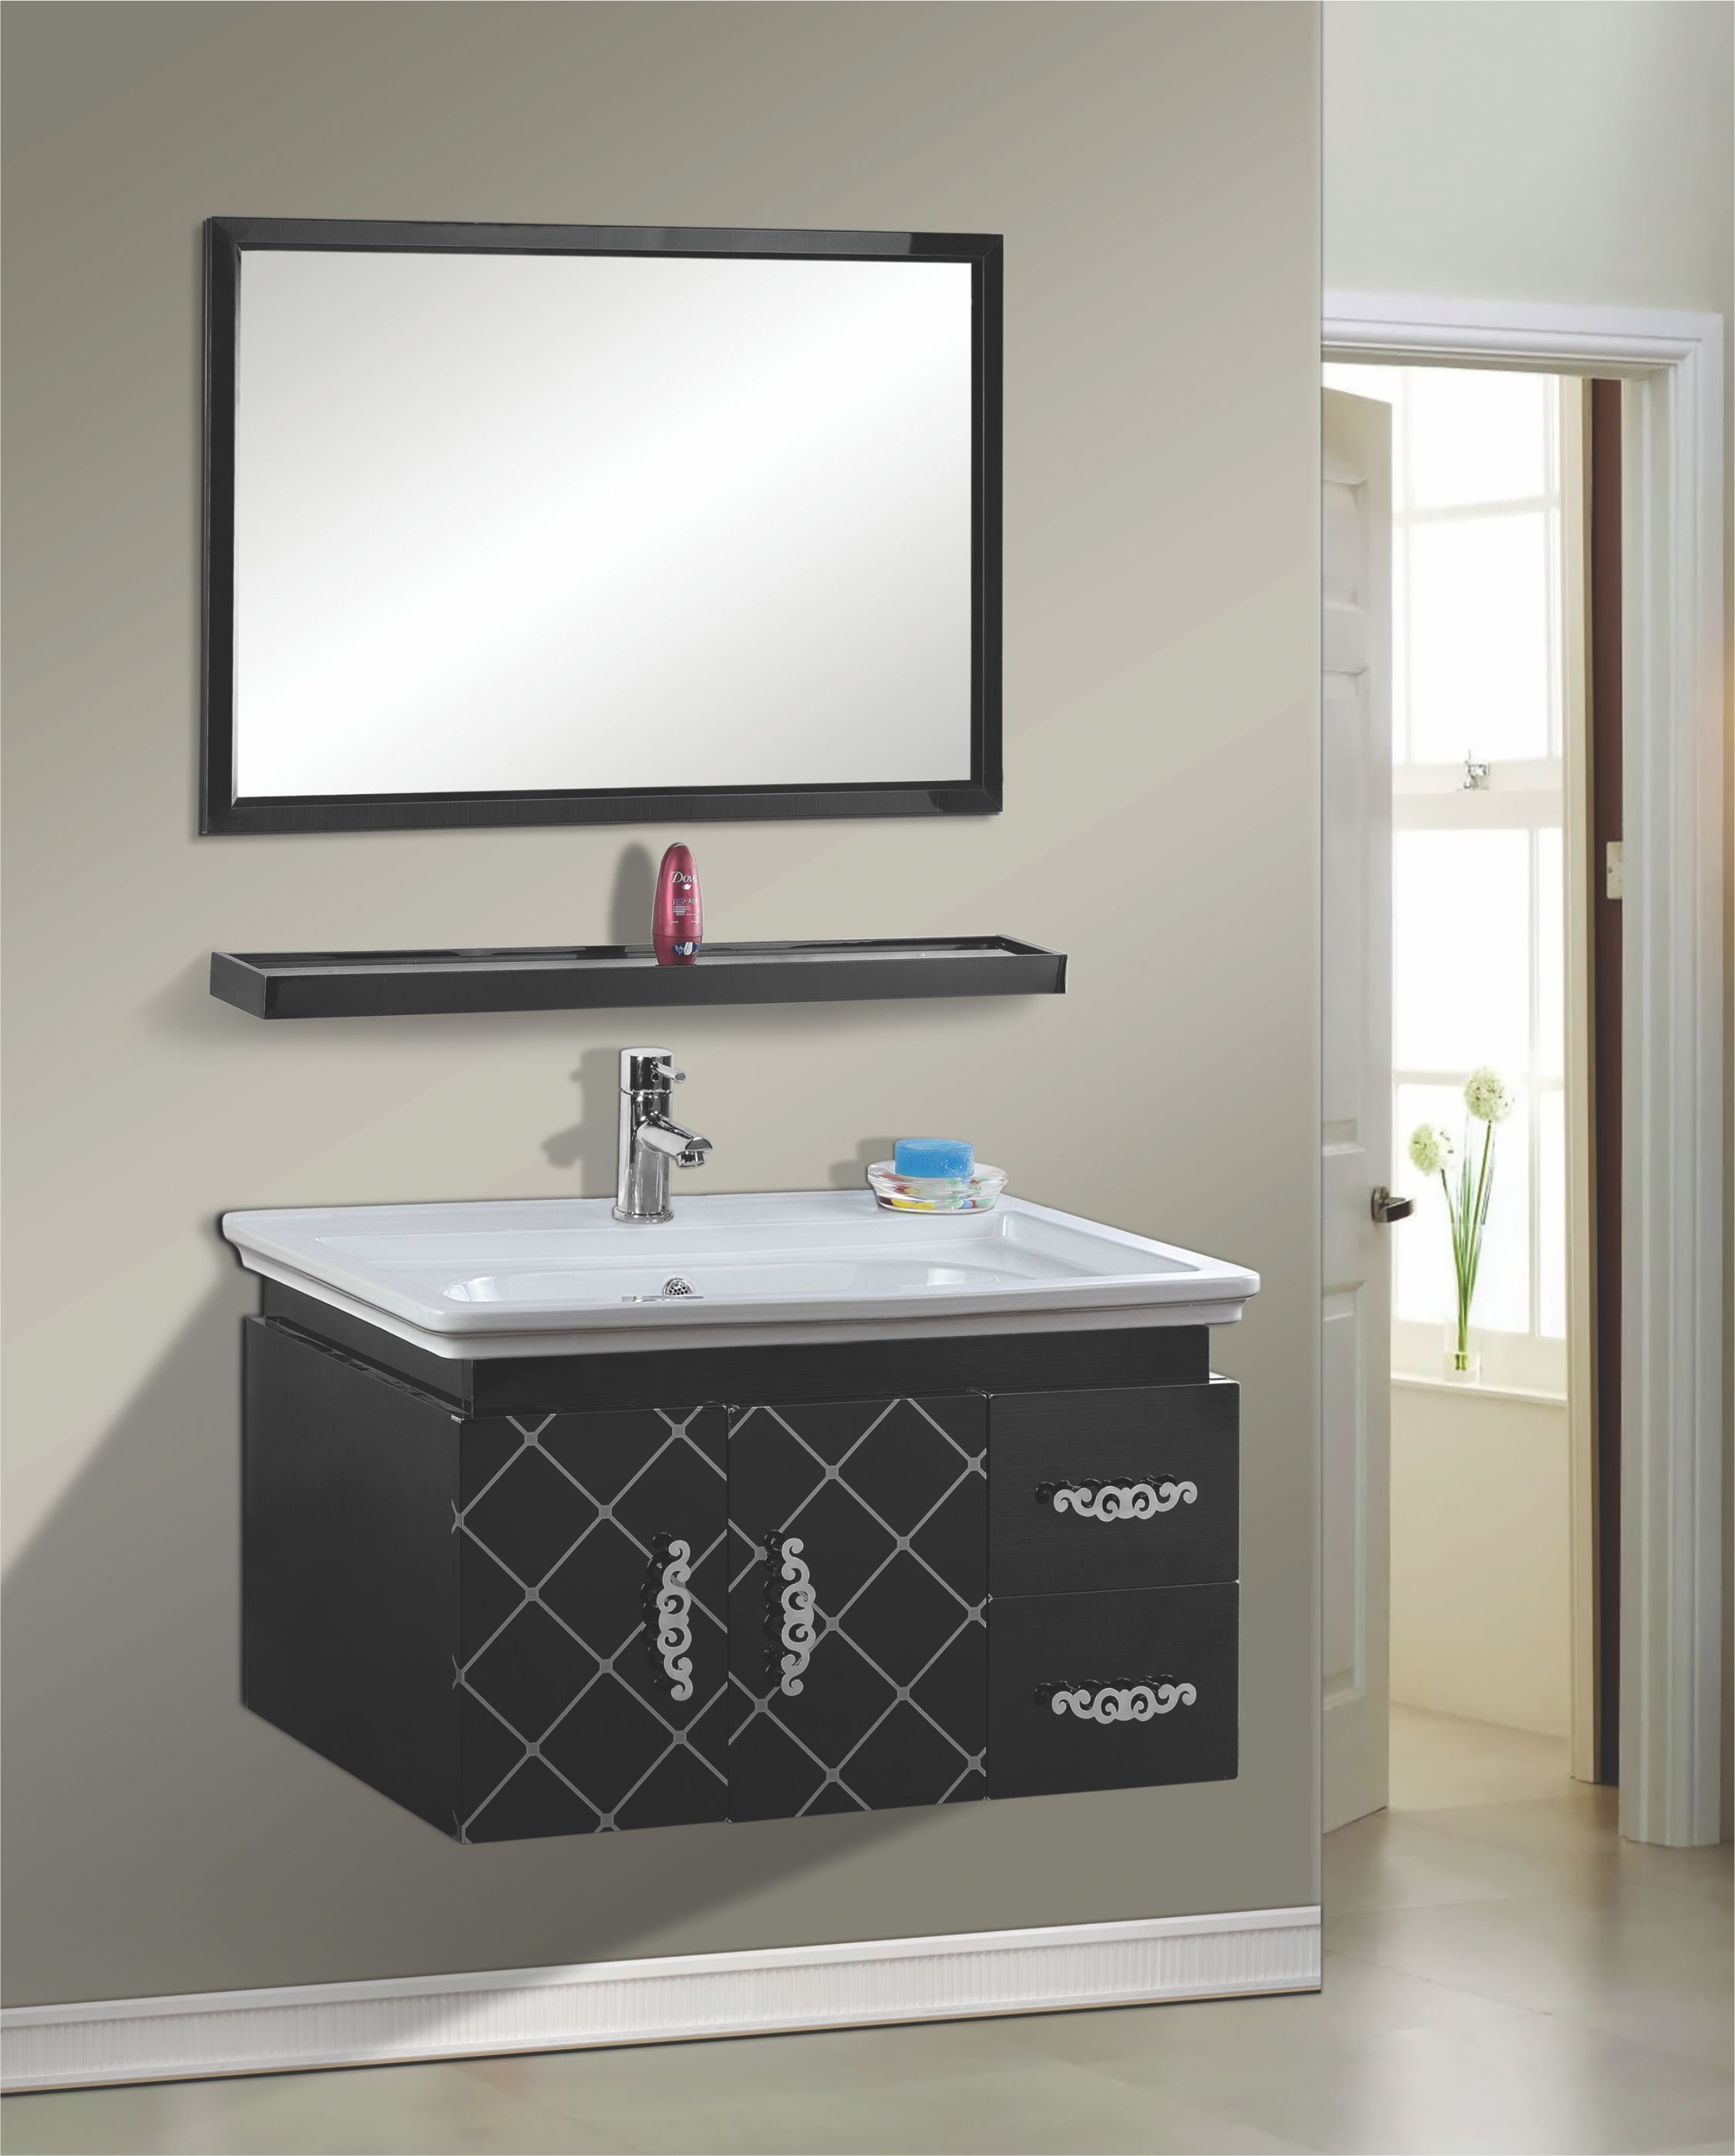 Stainless steel SNS-1131 | Stainless Steel Bathroom Cabinets ...